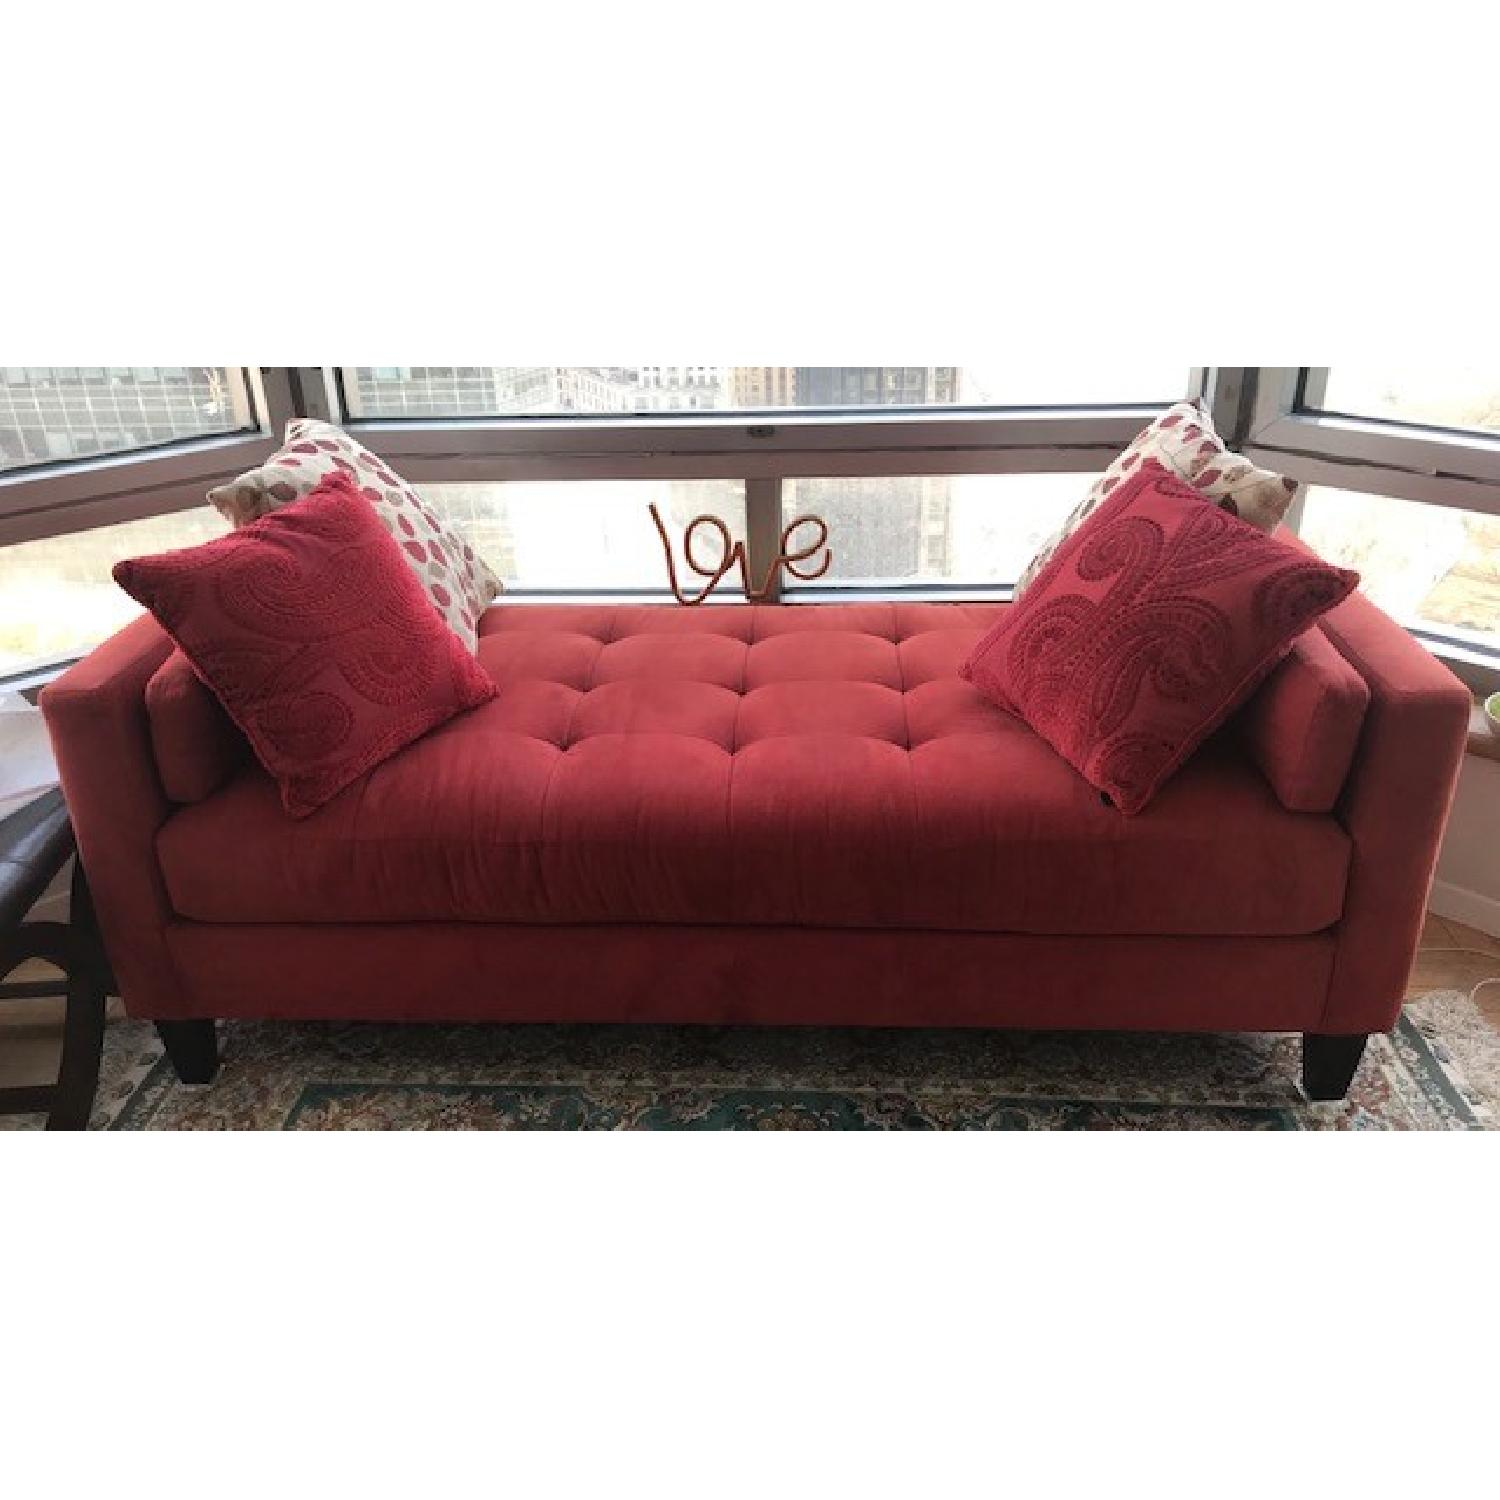 Macy's Max Home Amalfi Red Microfiber Chaise/Daybed - image-2